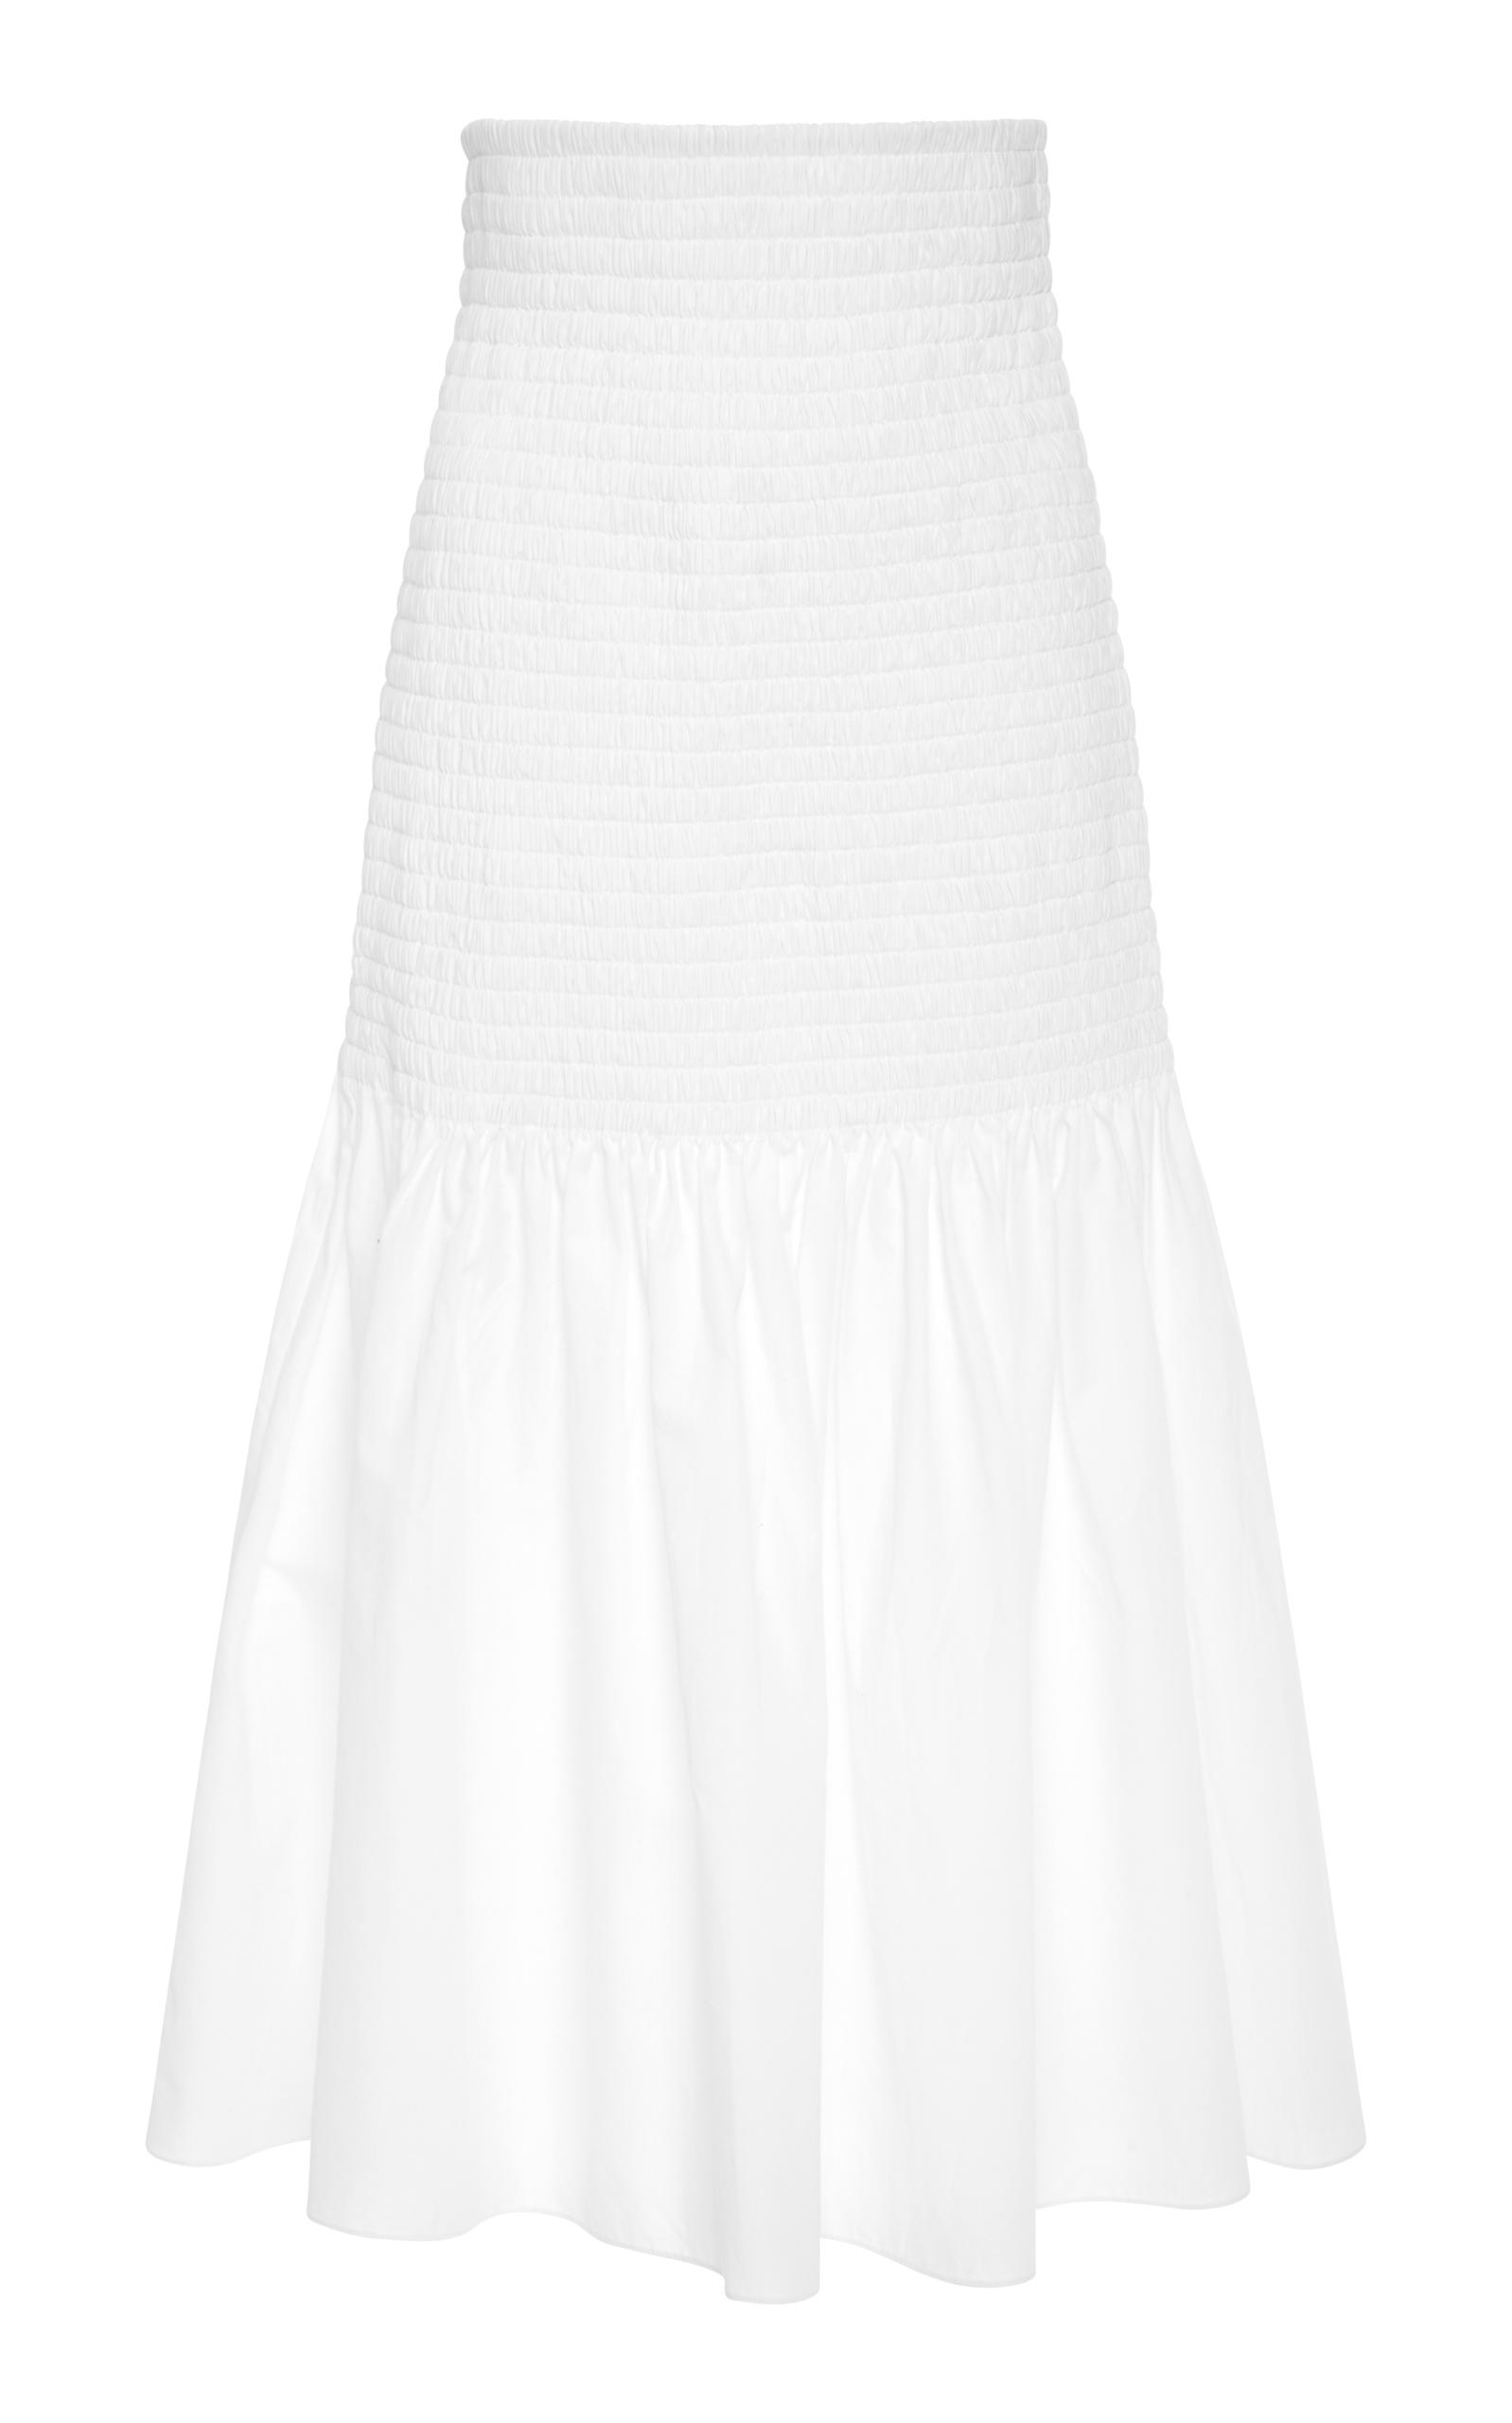 Rosetta Getty Cotton Skirt In White